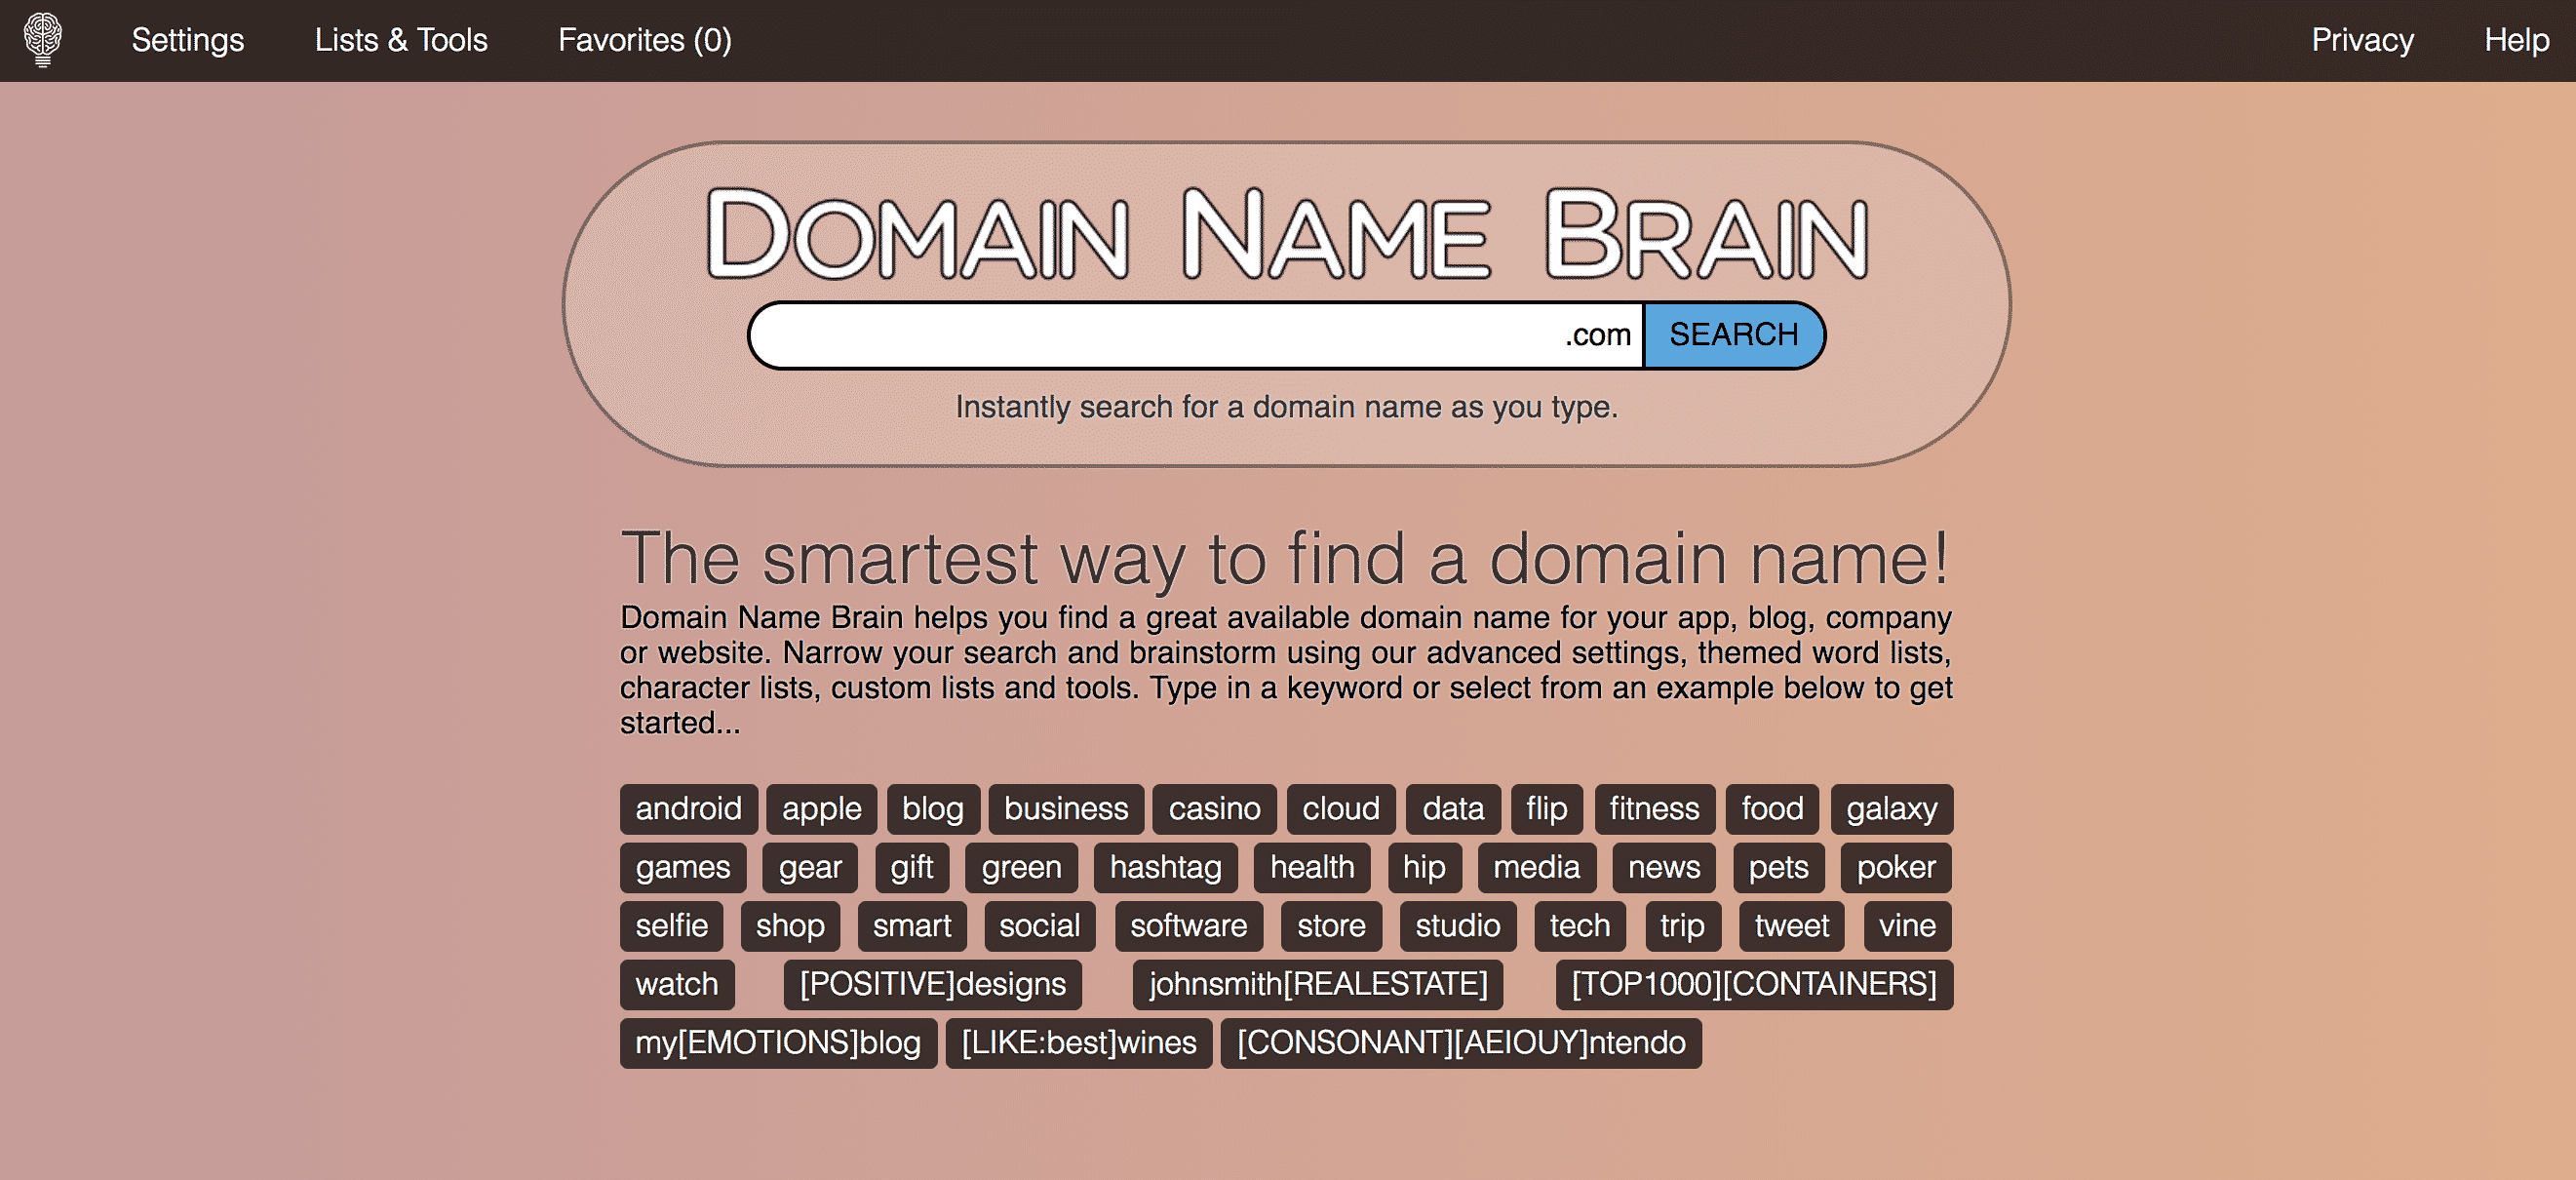 Domain Name Brain